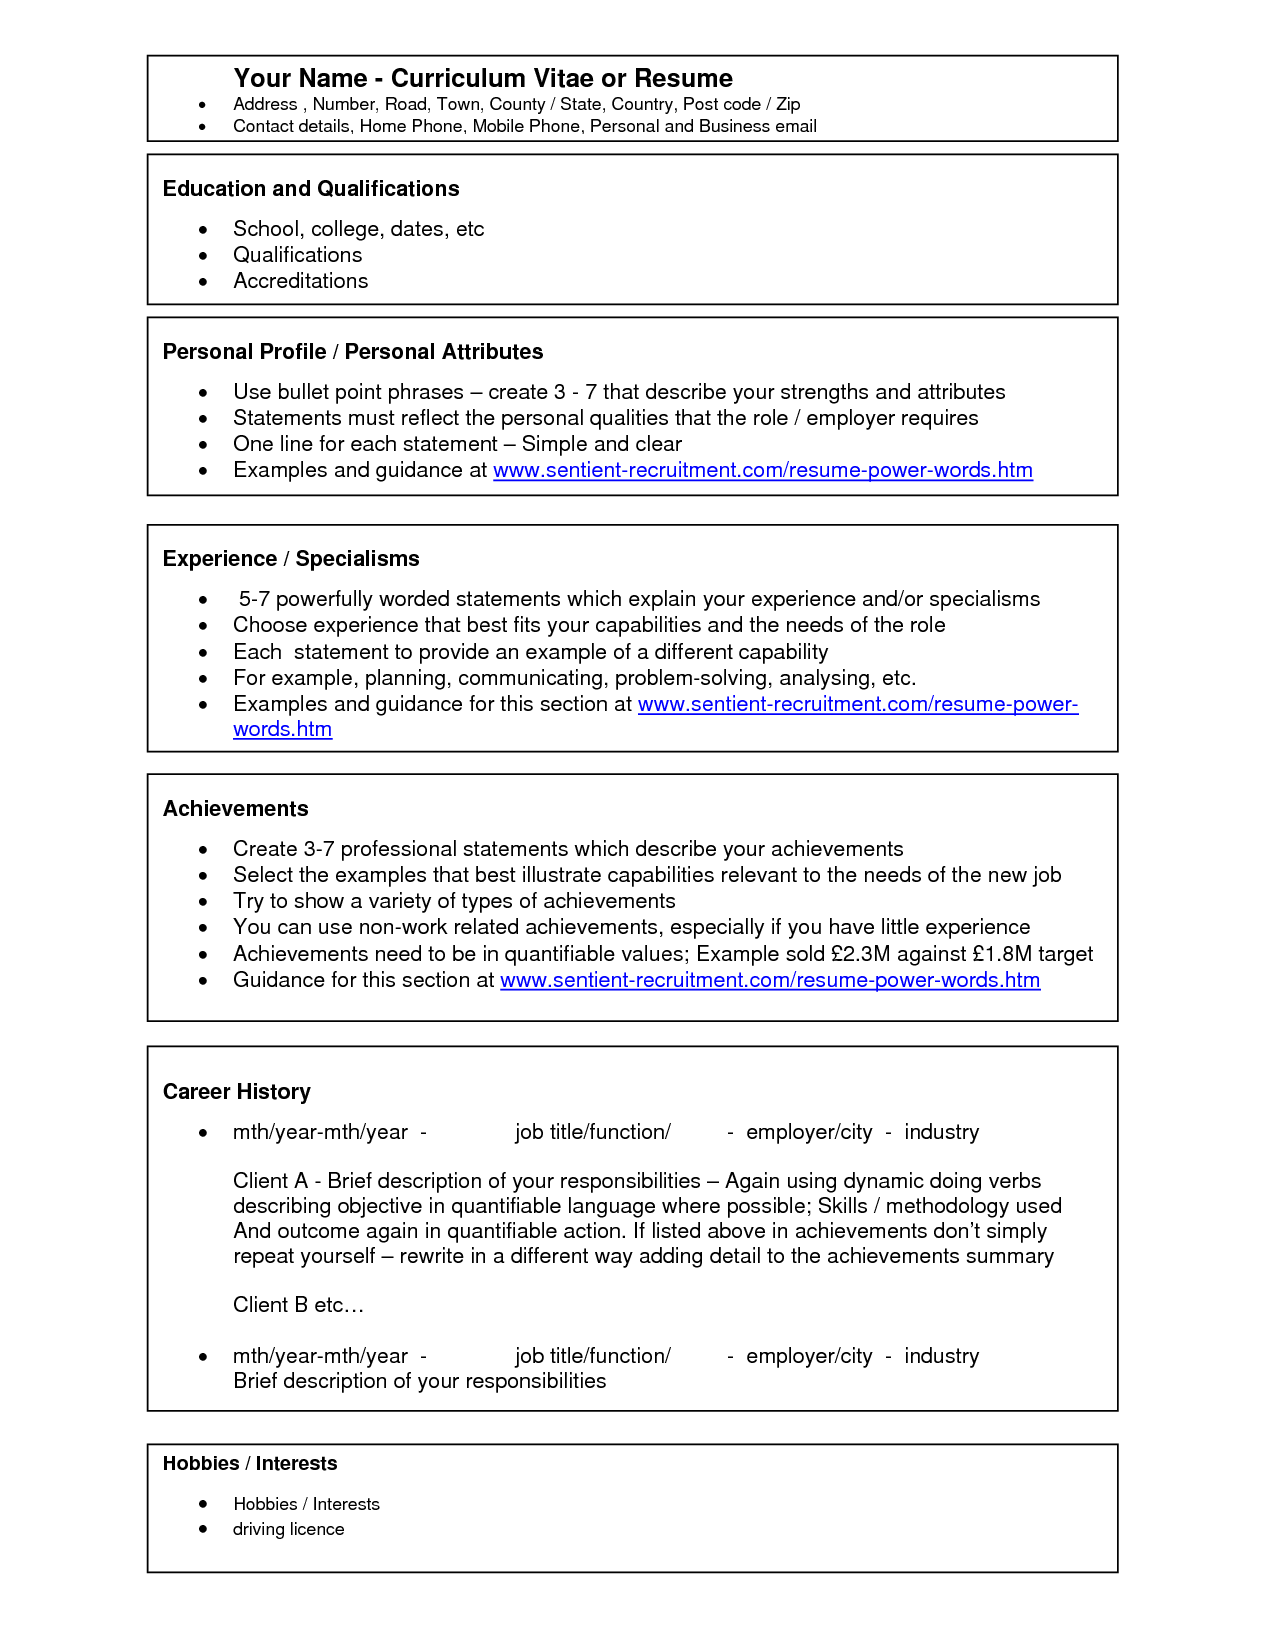 resume template ms word 2010